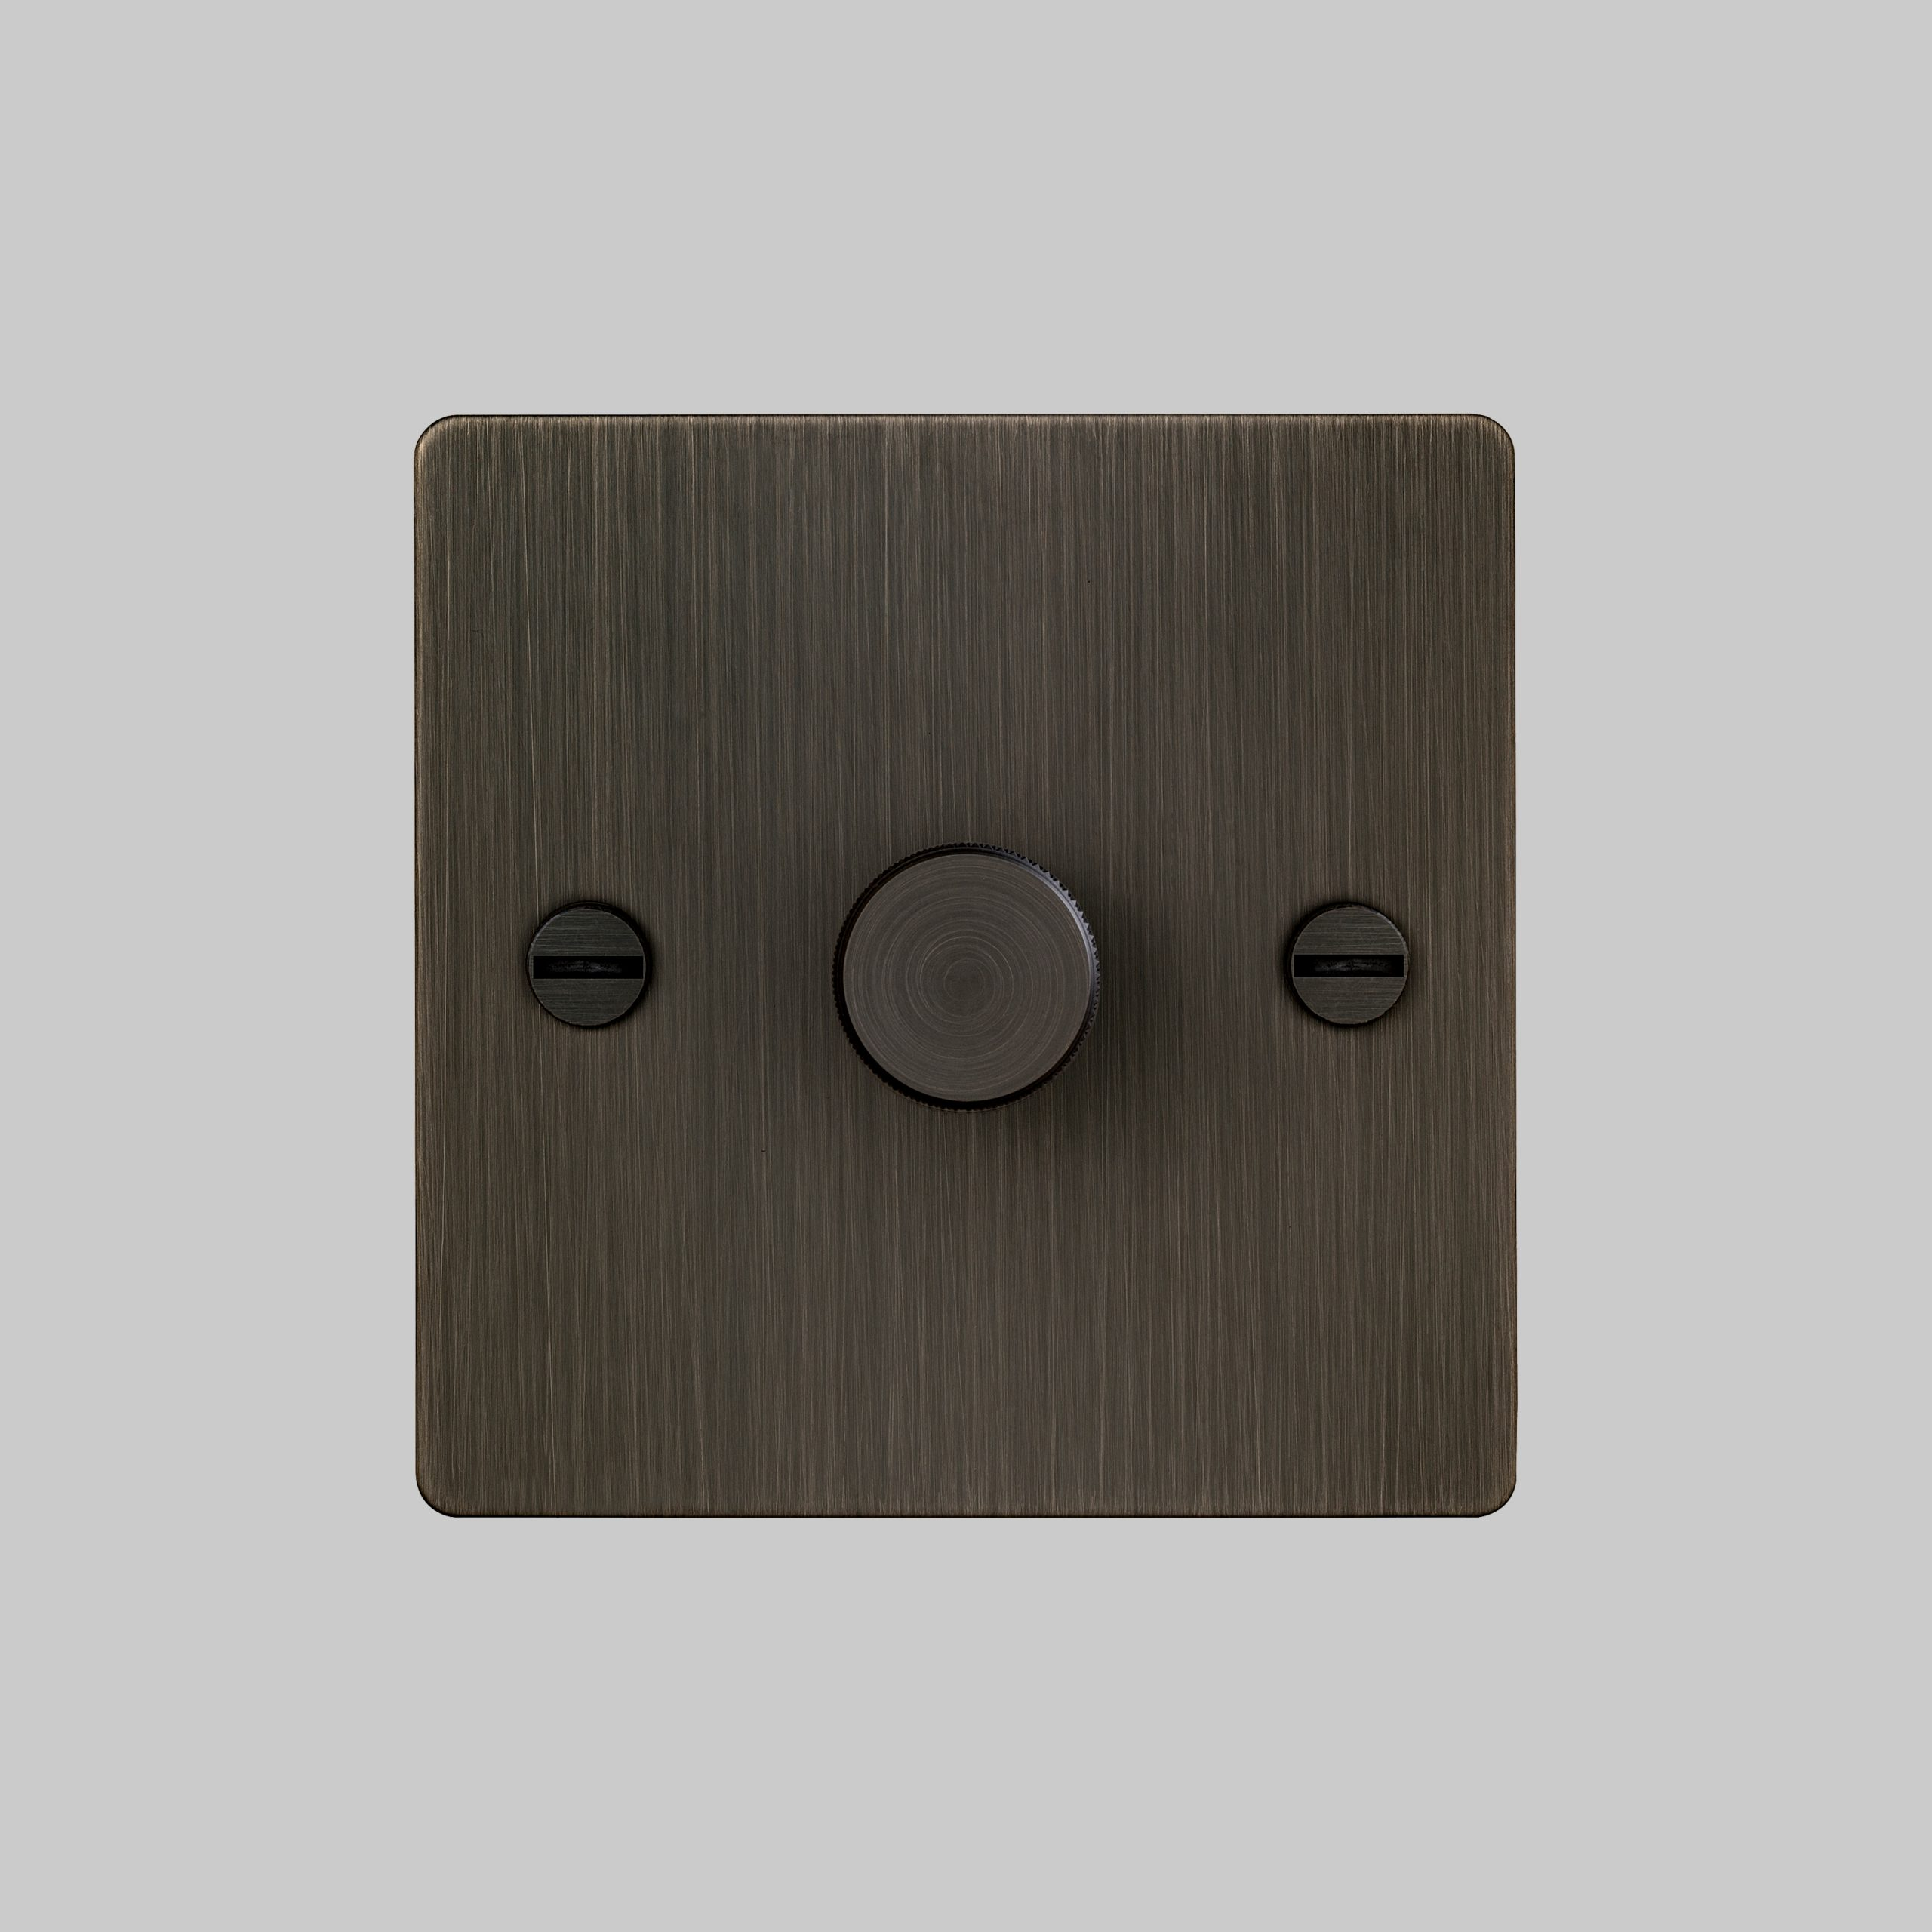 2. 1G_Dimmer_Front_Smoked_Bronze